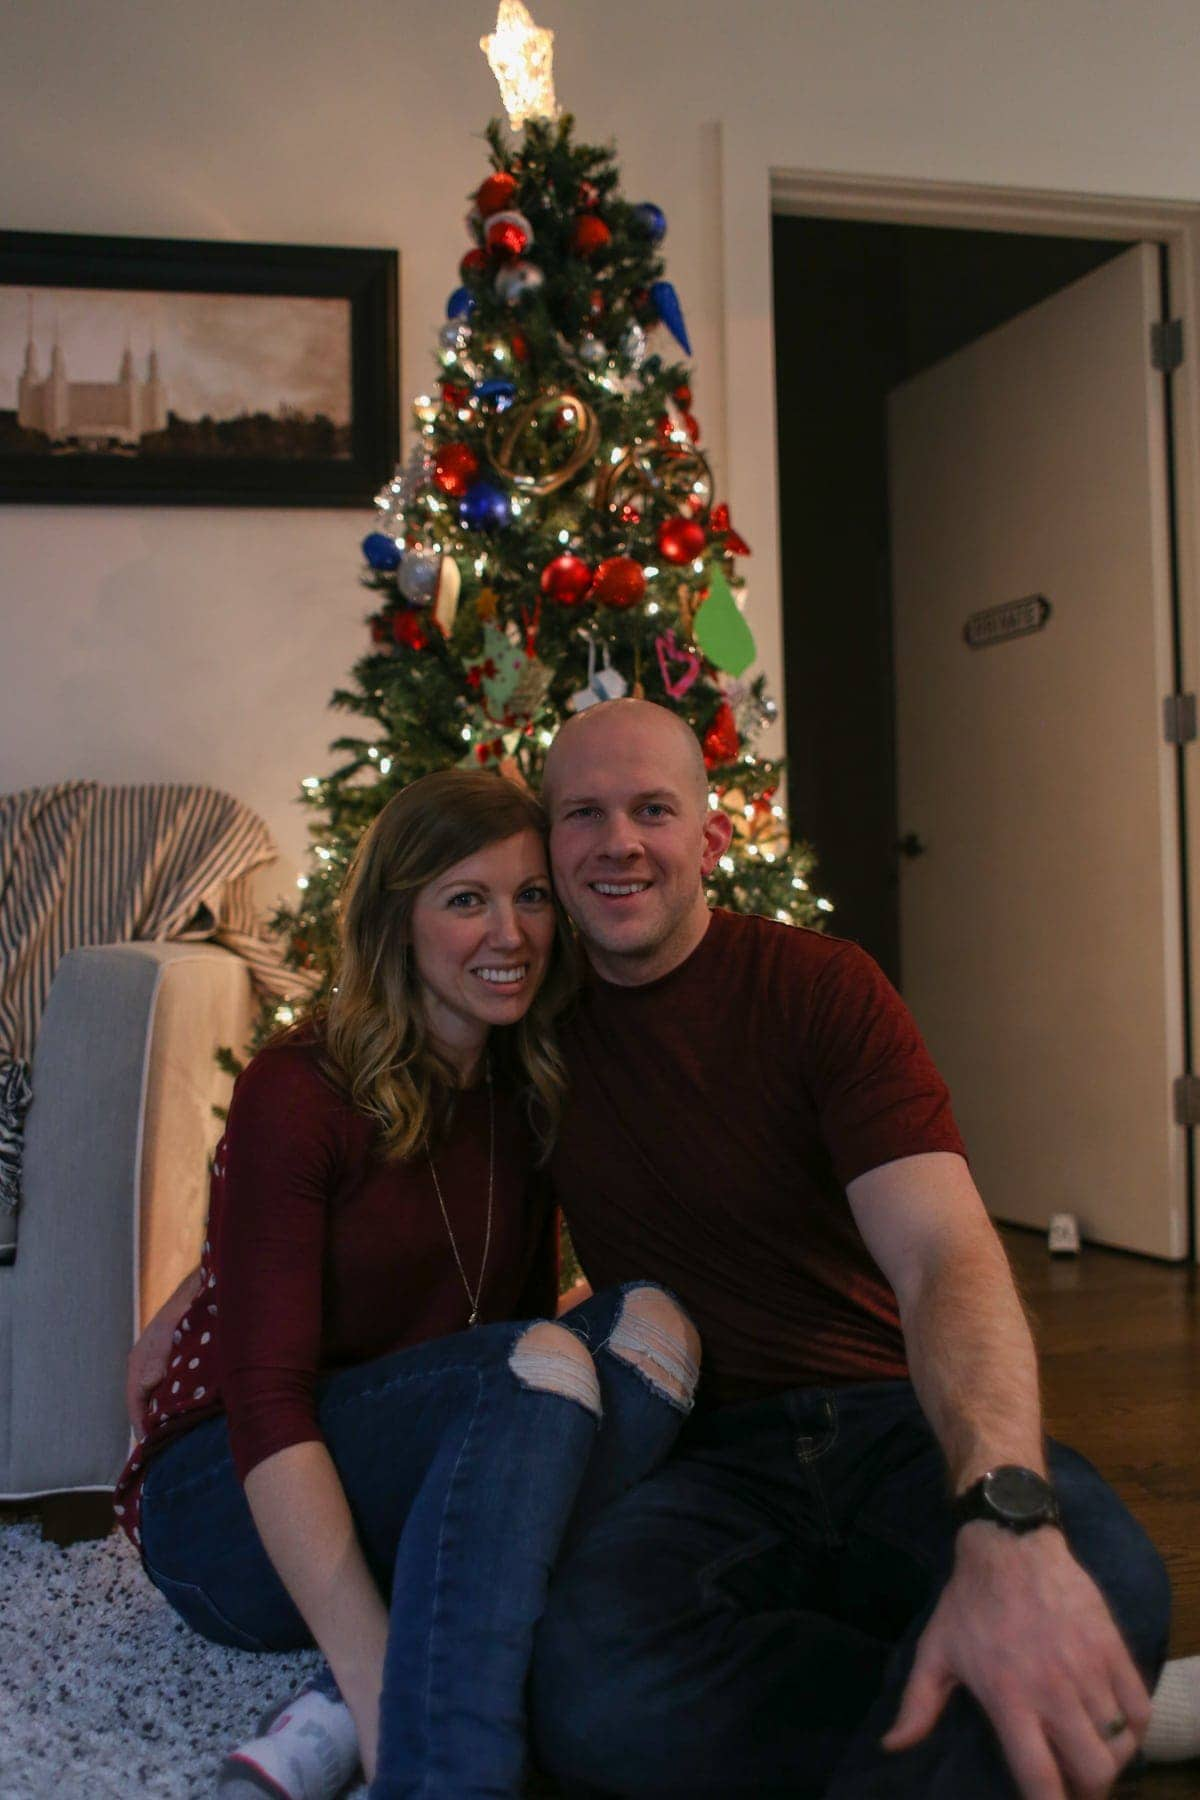 Lauren and Gordon in front of a Christmas tree in their home